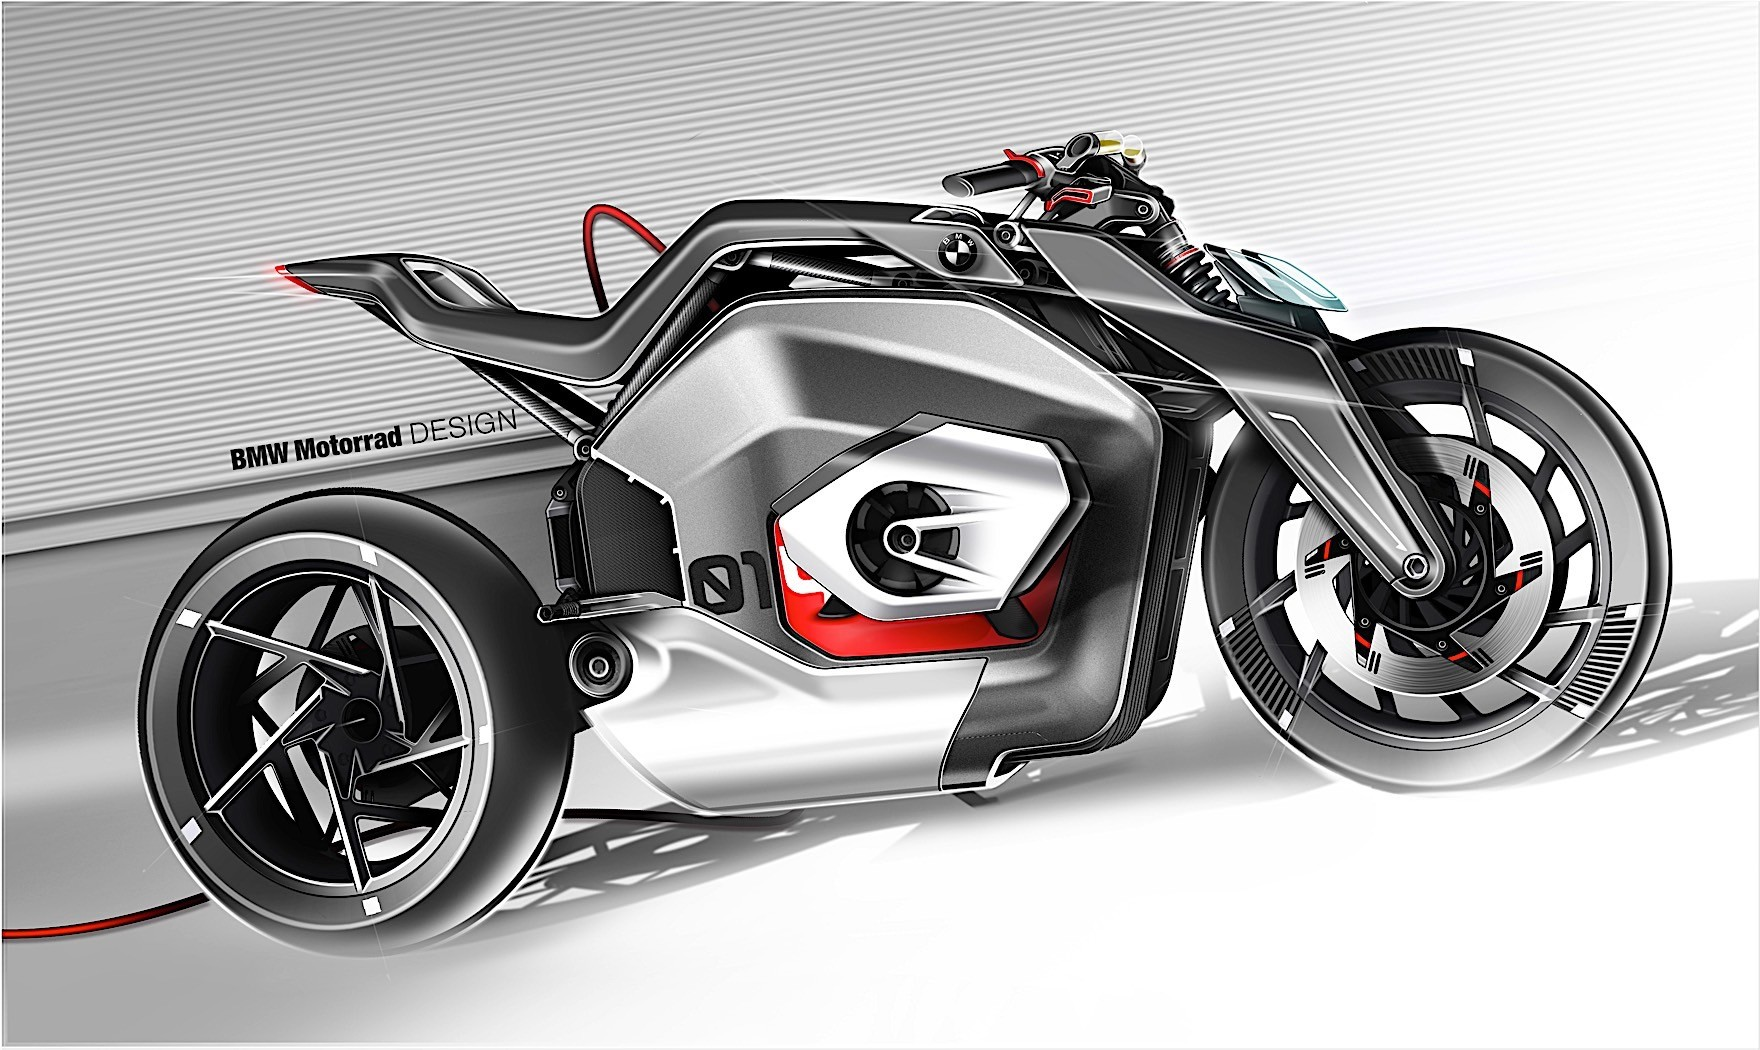 bmw-motorrad-goes-electric-with-naked-vision-dc-roadster-15